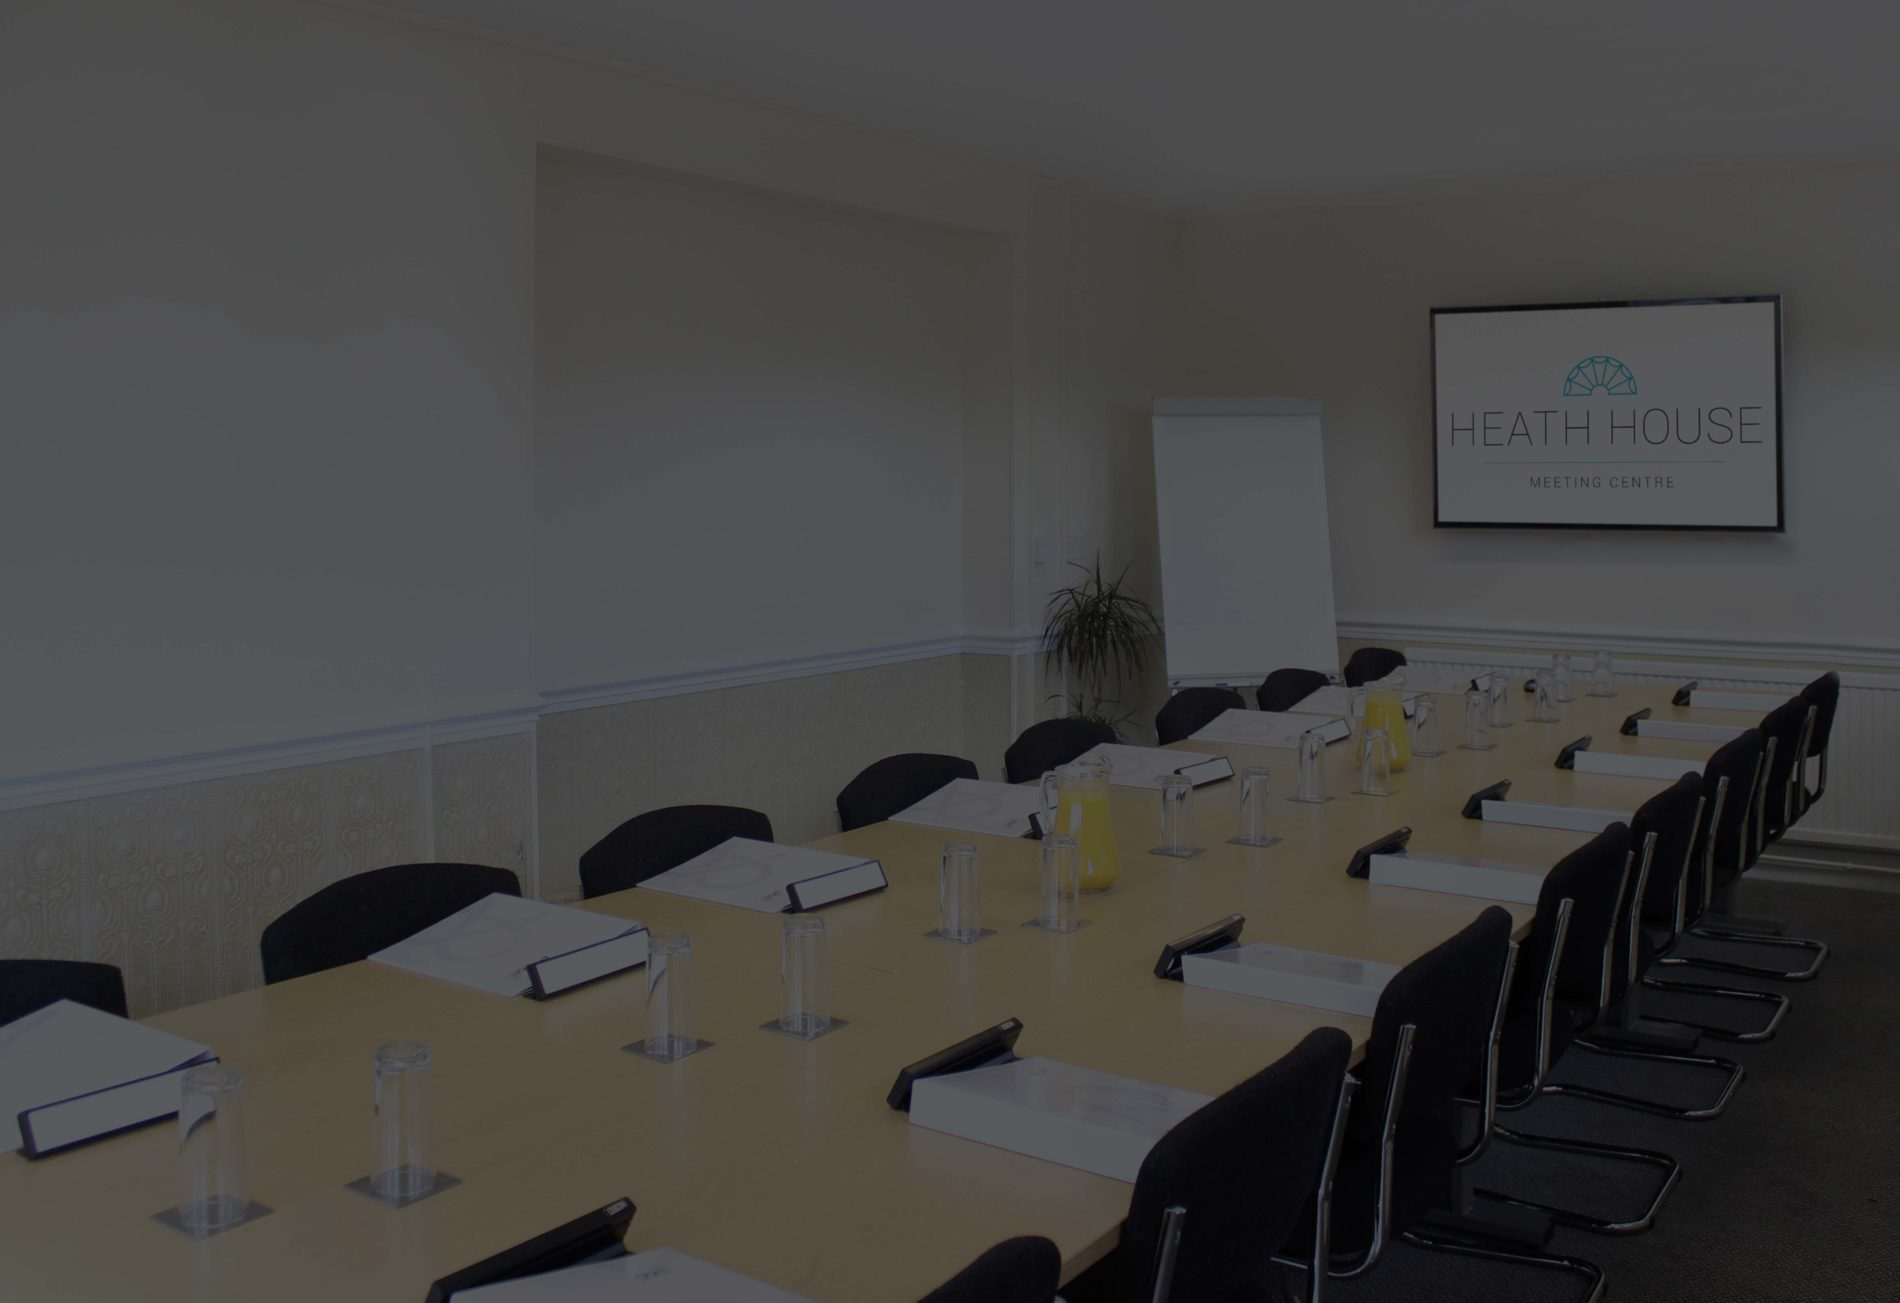 Meeting rooms at Heath House